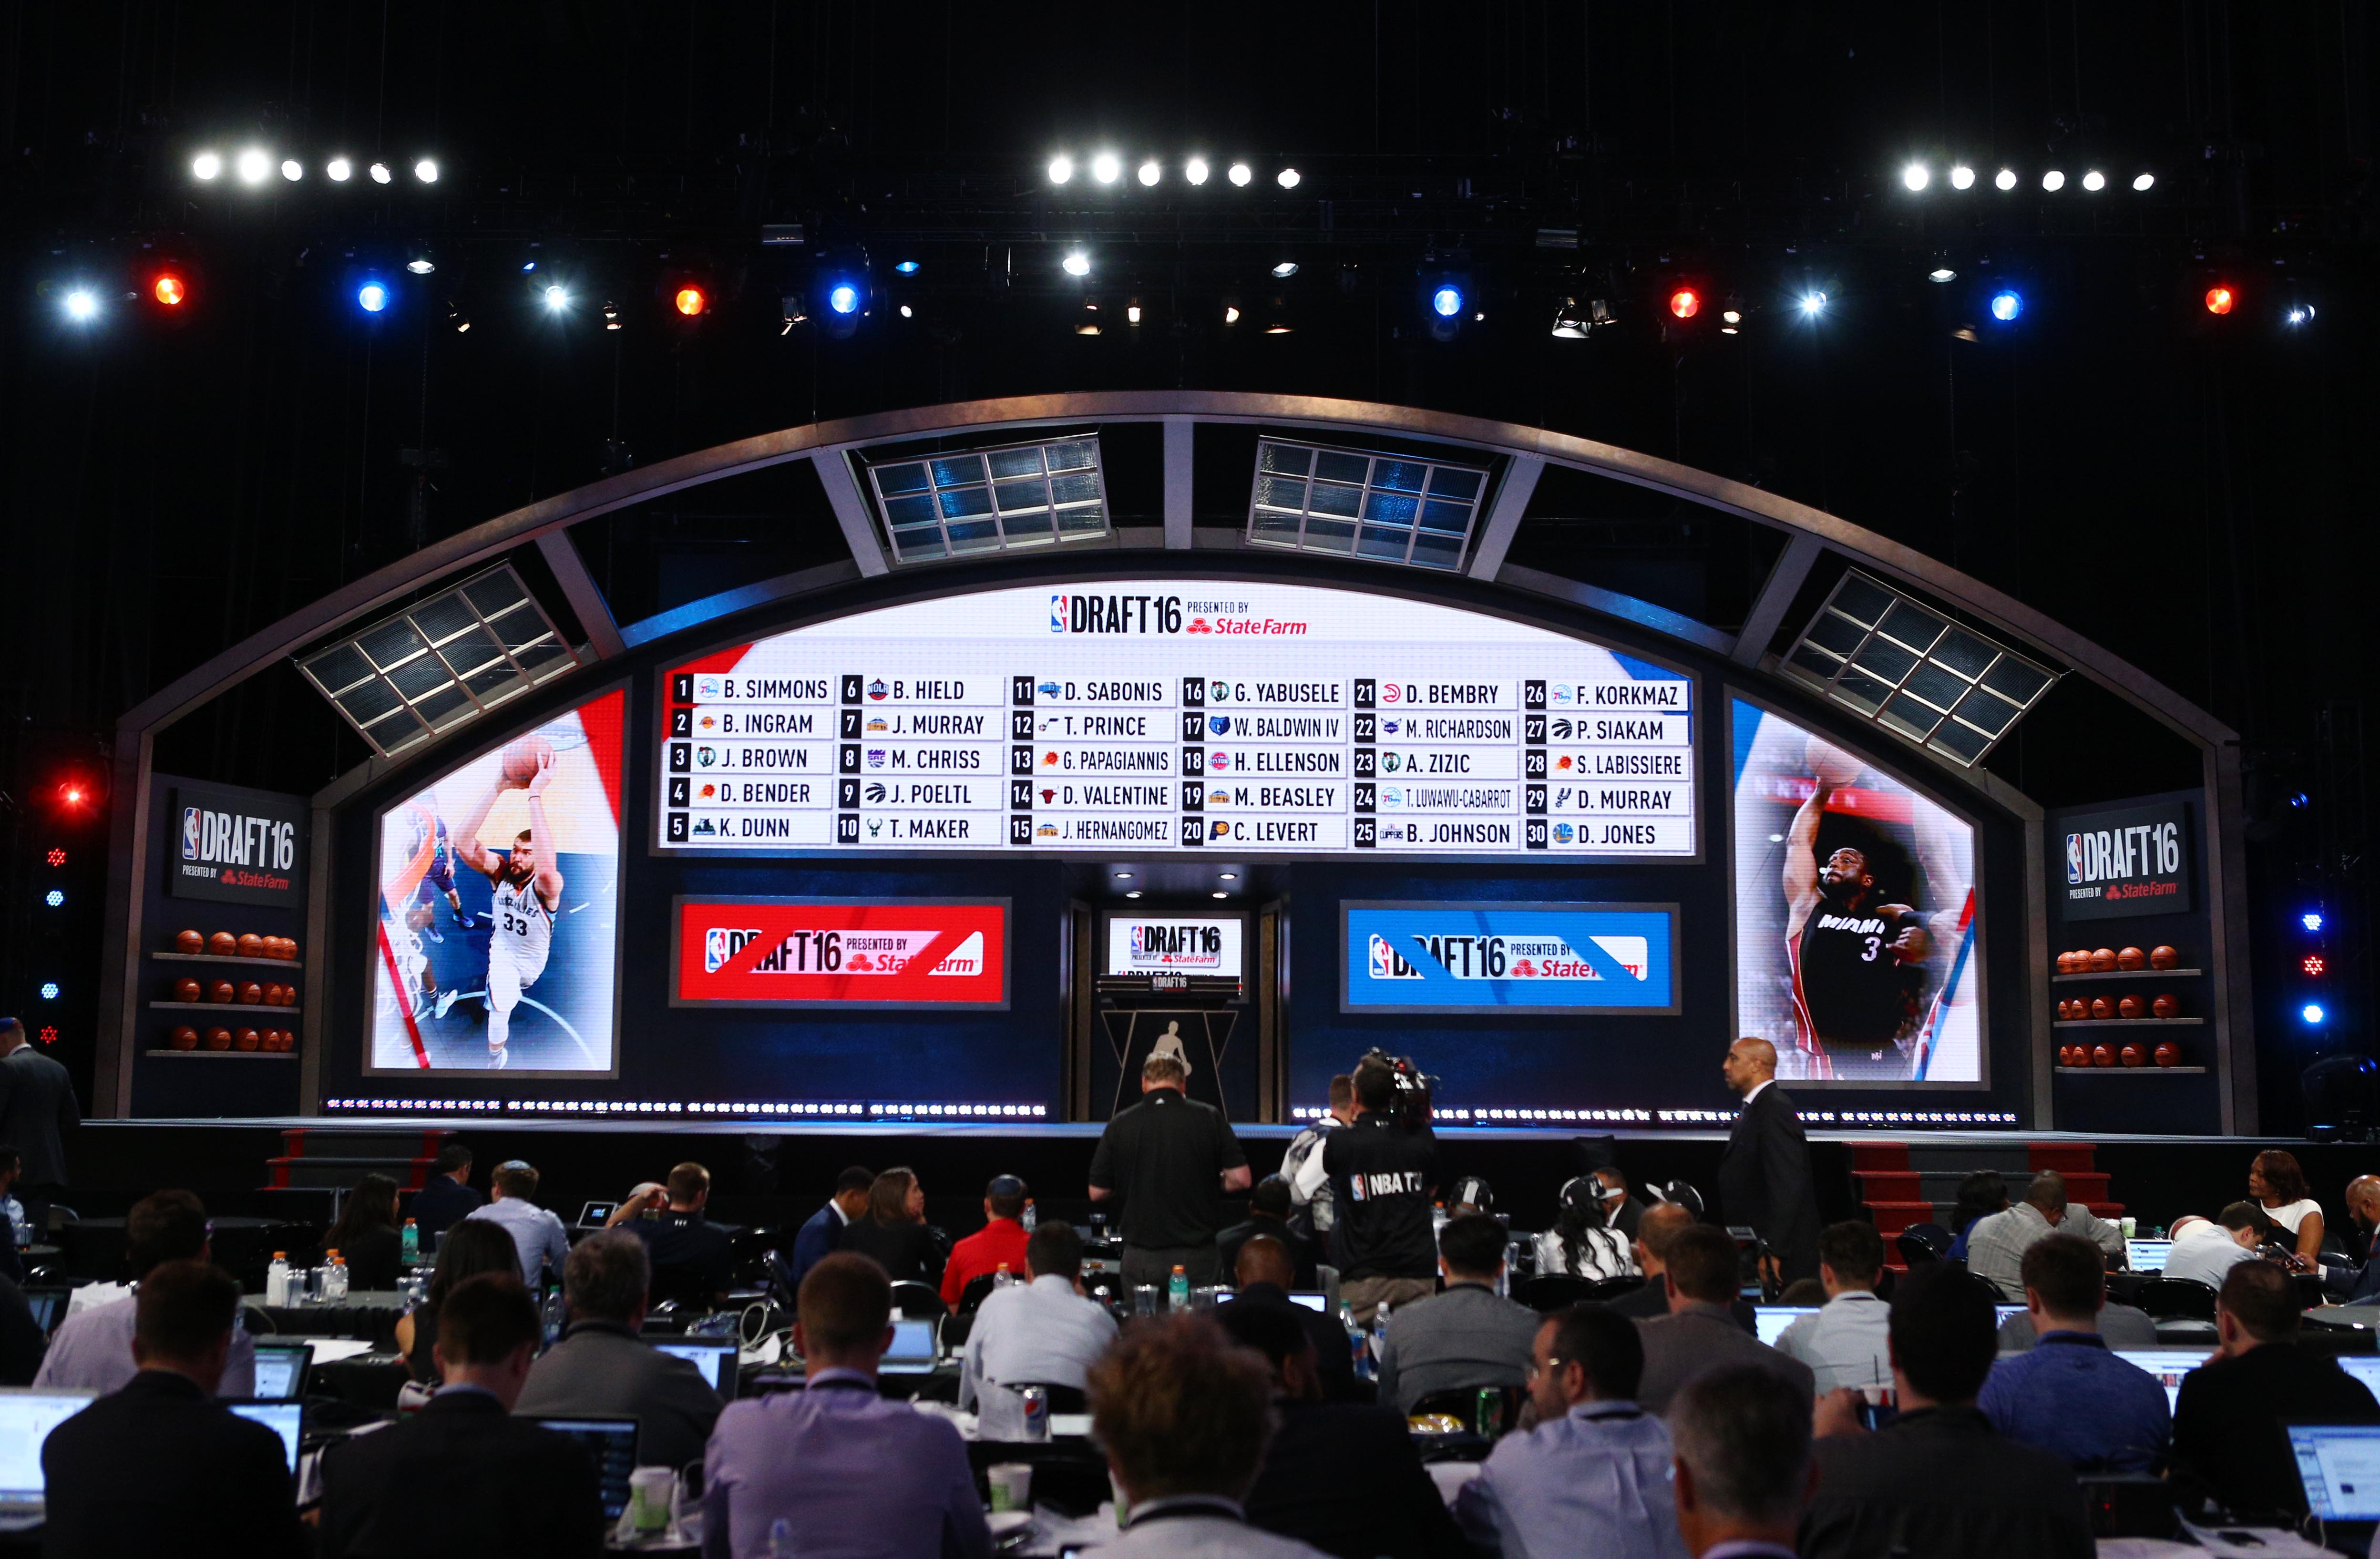 has trading the overall in the nba draft fared